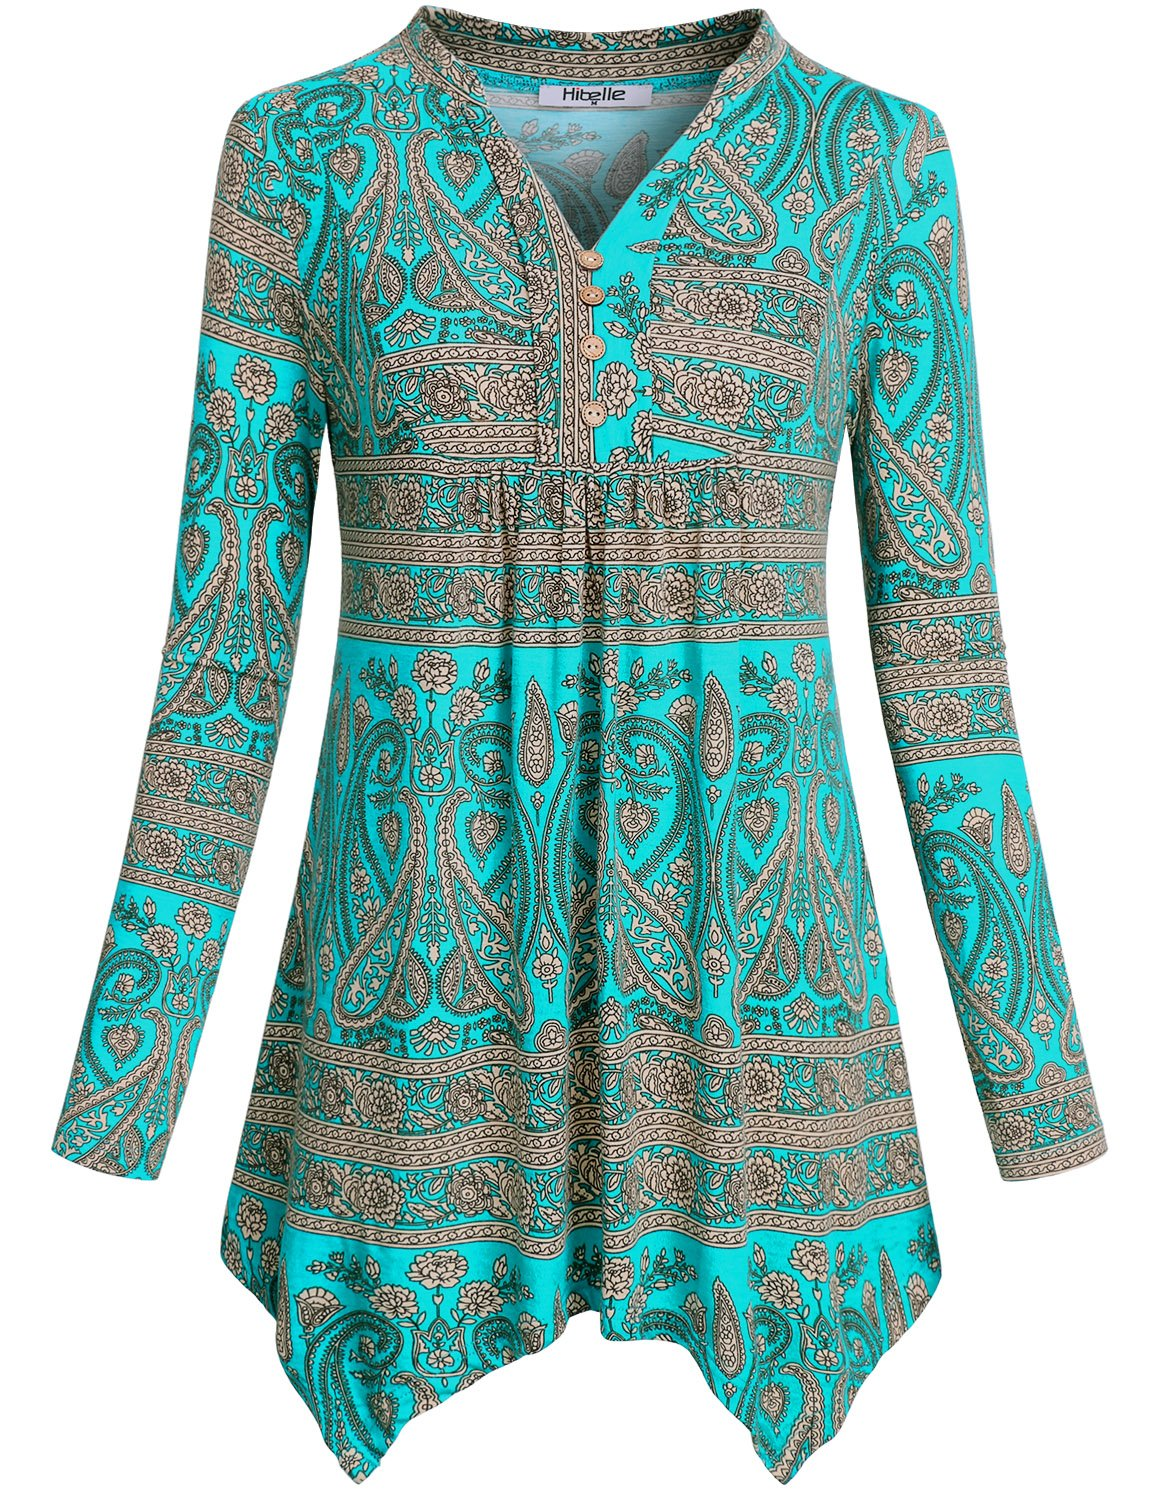 Hibelle Going Out Tops for Women, Ladies Paisley Shirt Henley Henley Split Vneck Flattering Country Style Stretchy Soft Floral Print Pattern Empire Waist Peplum Green L